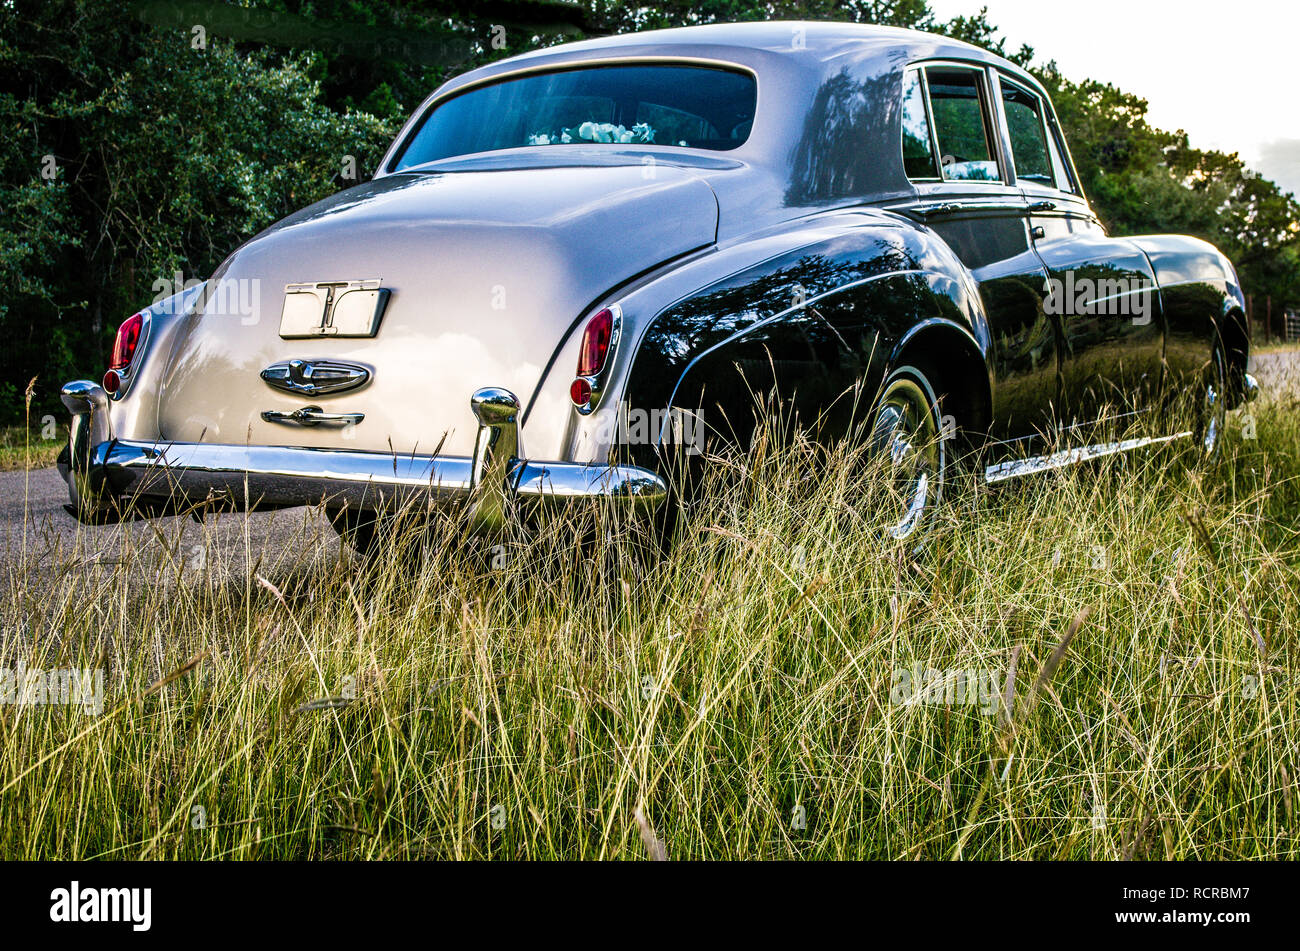 Rear view of the trunk of a two toned, luxury, vintage car on a Texas rural road with tall grass. - Stock Image